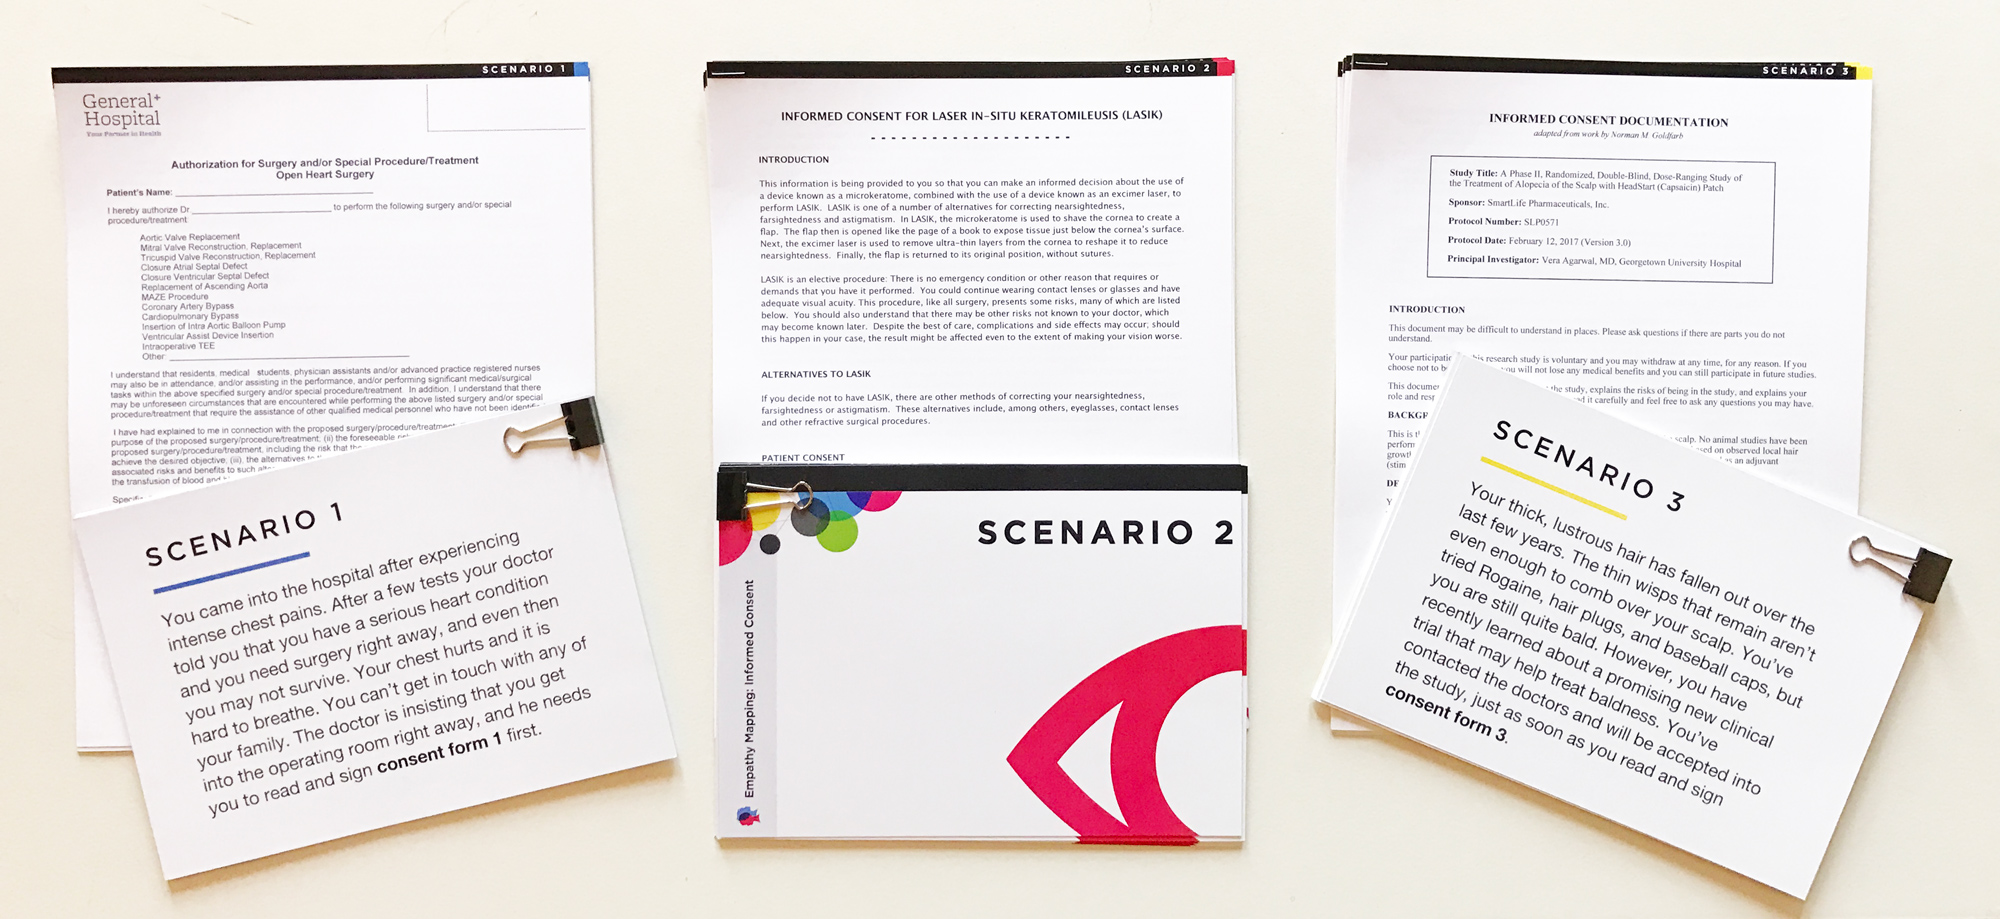 Scenario cards and consent forms